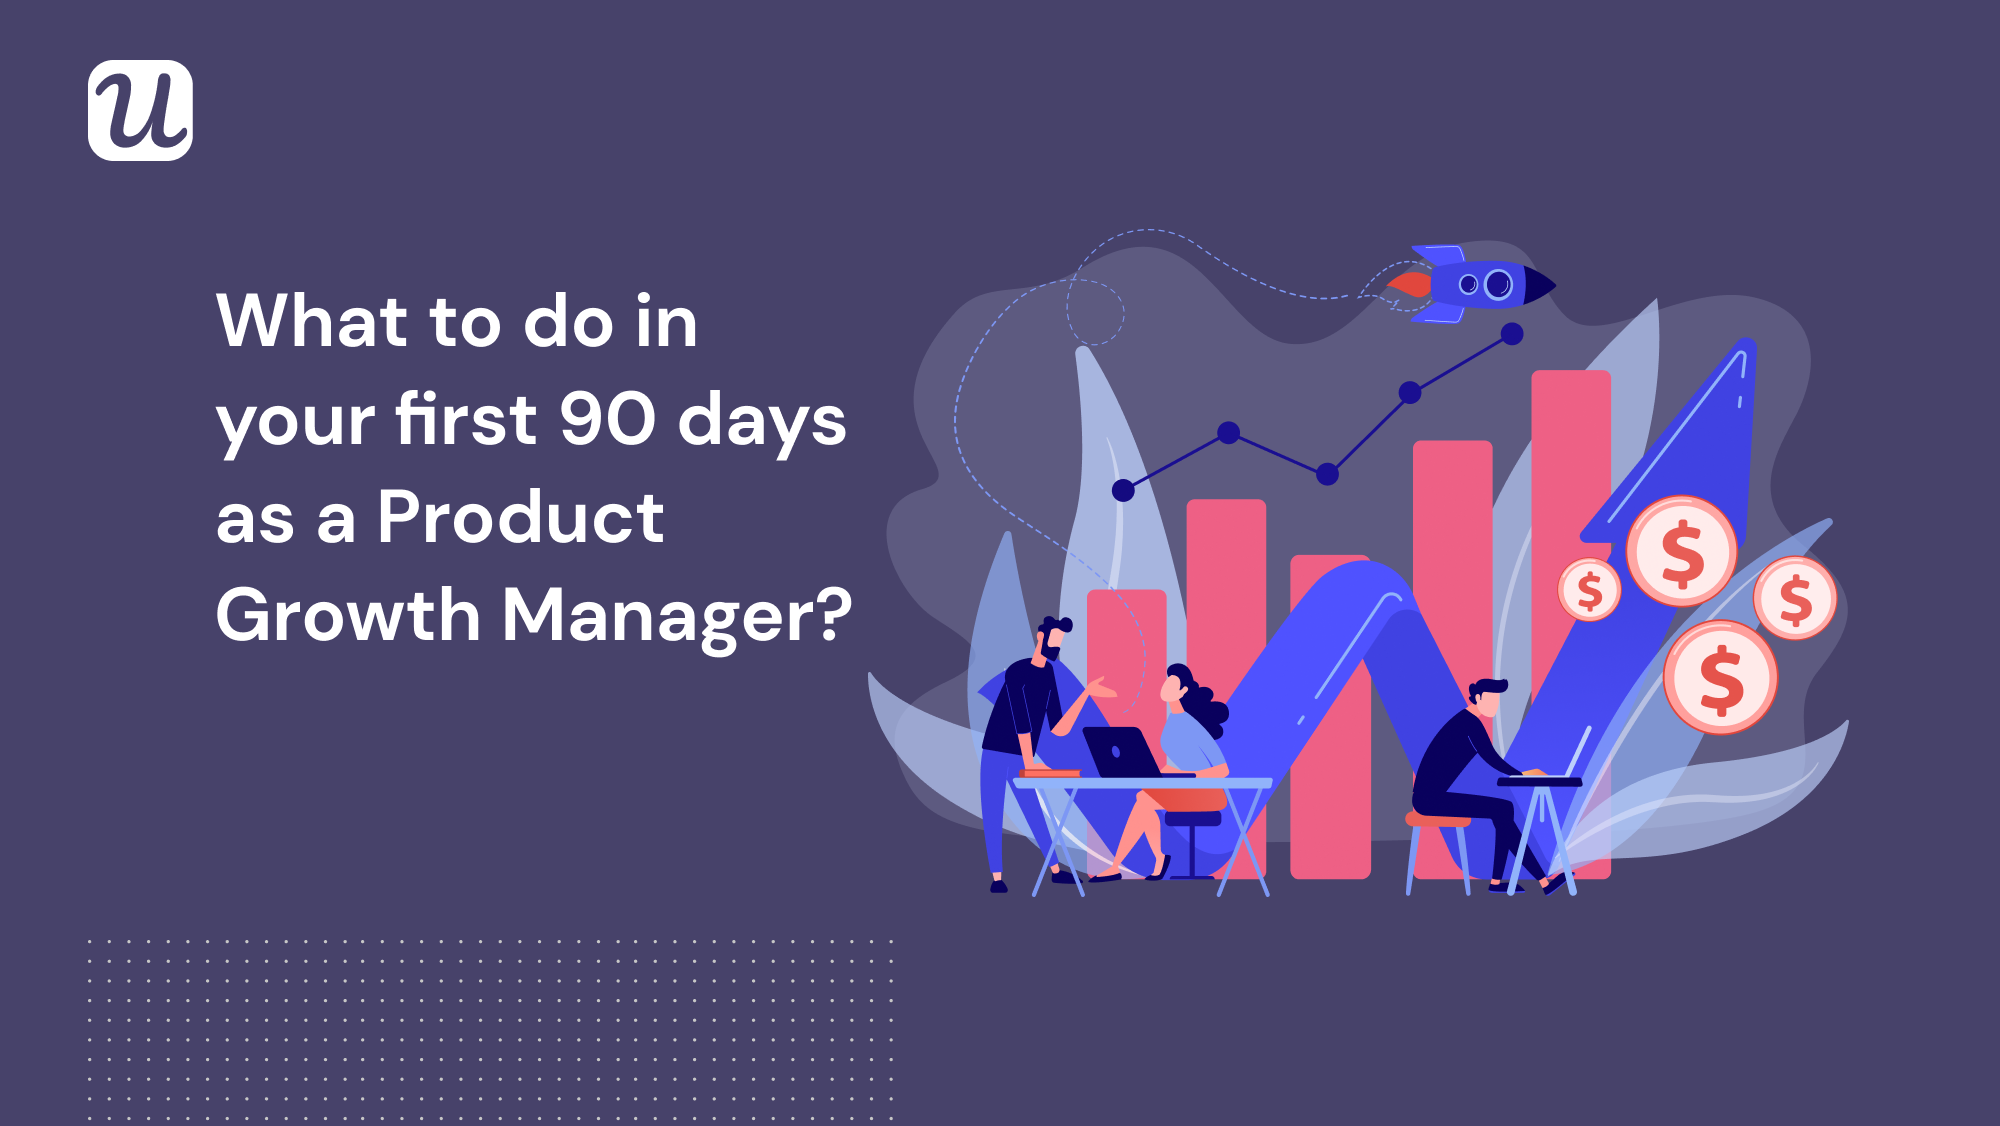 What to do in your first 90 days as a Product Growth Manager_